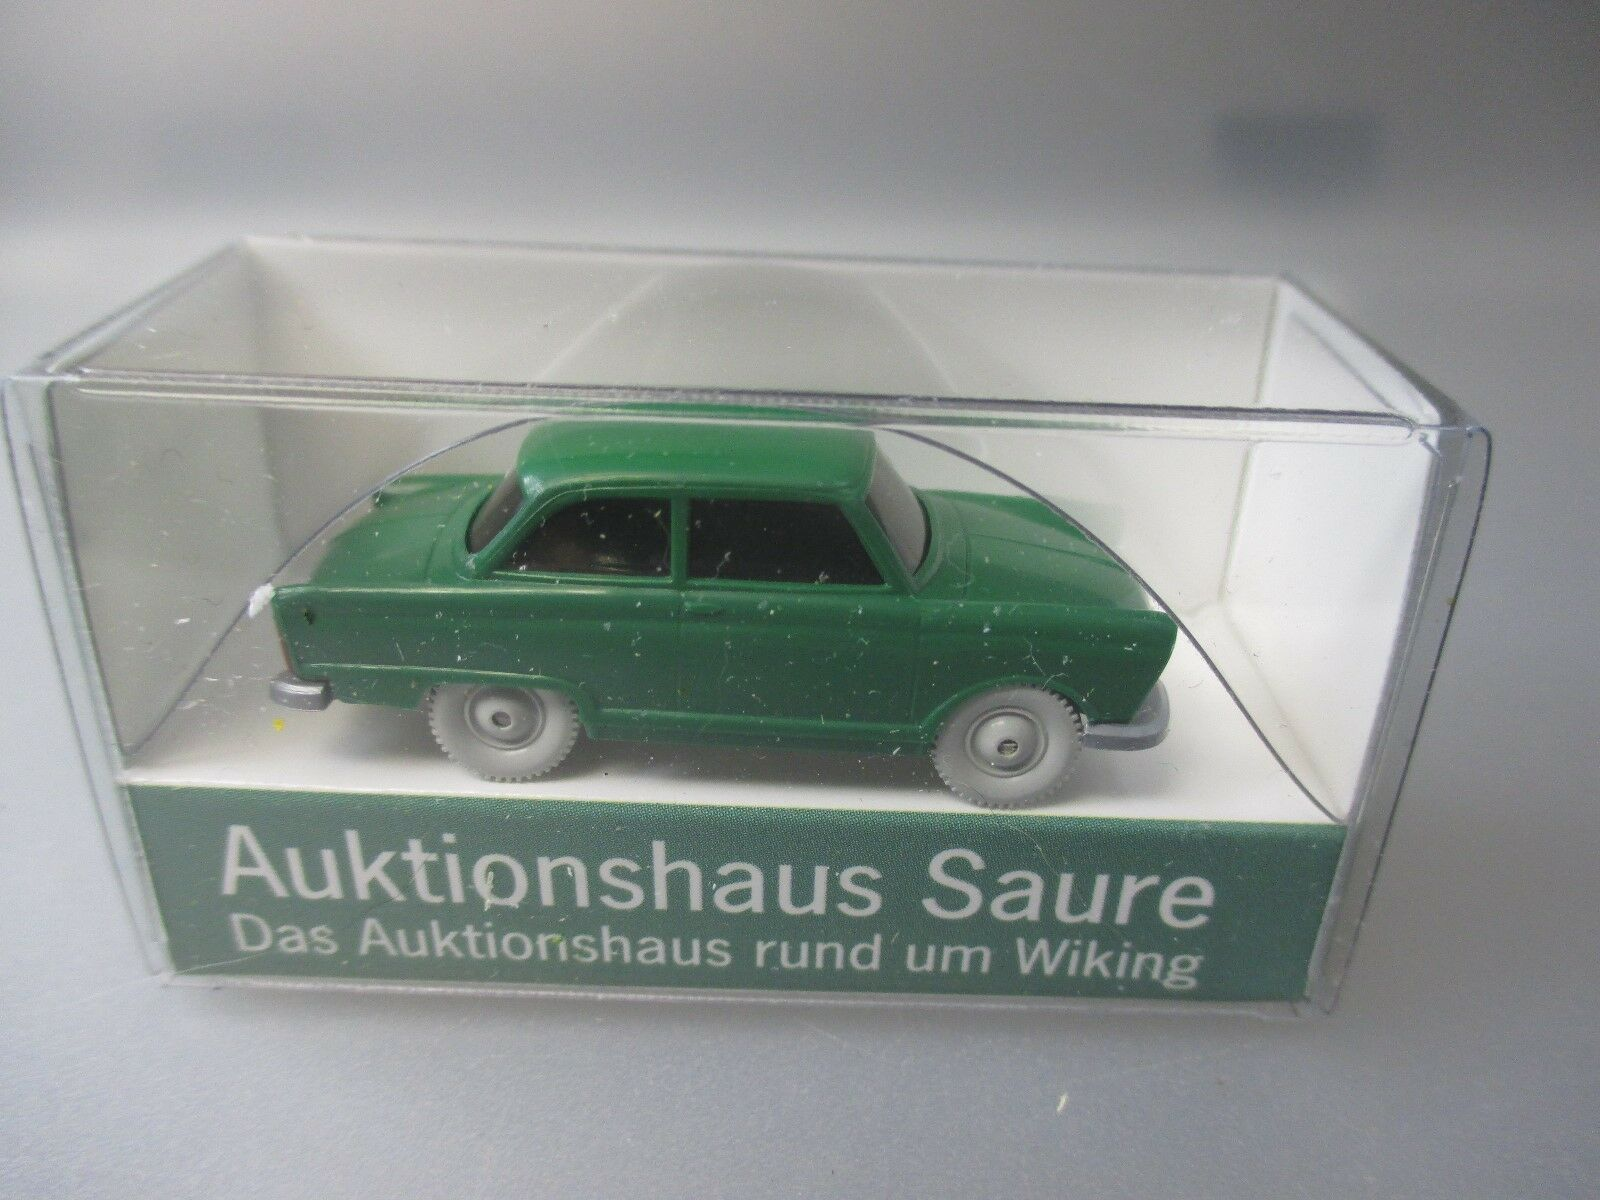 Wiking  DKW Junior Promo Auktionshaus Sour 75 Auction (Schub72)